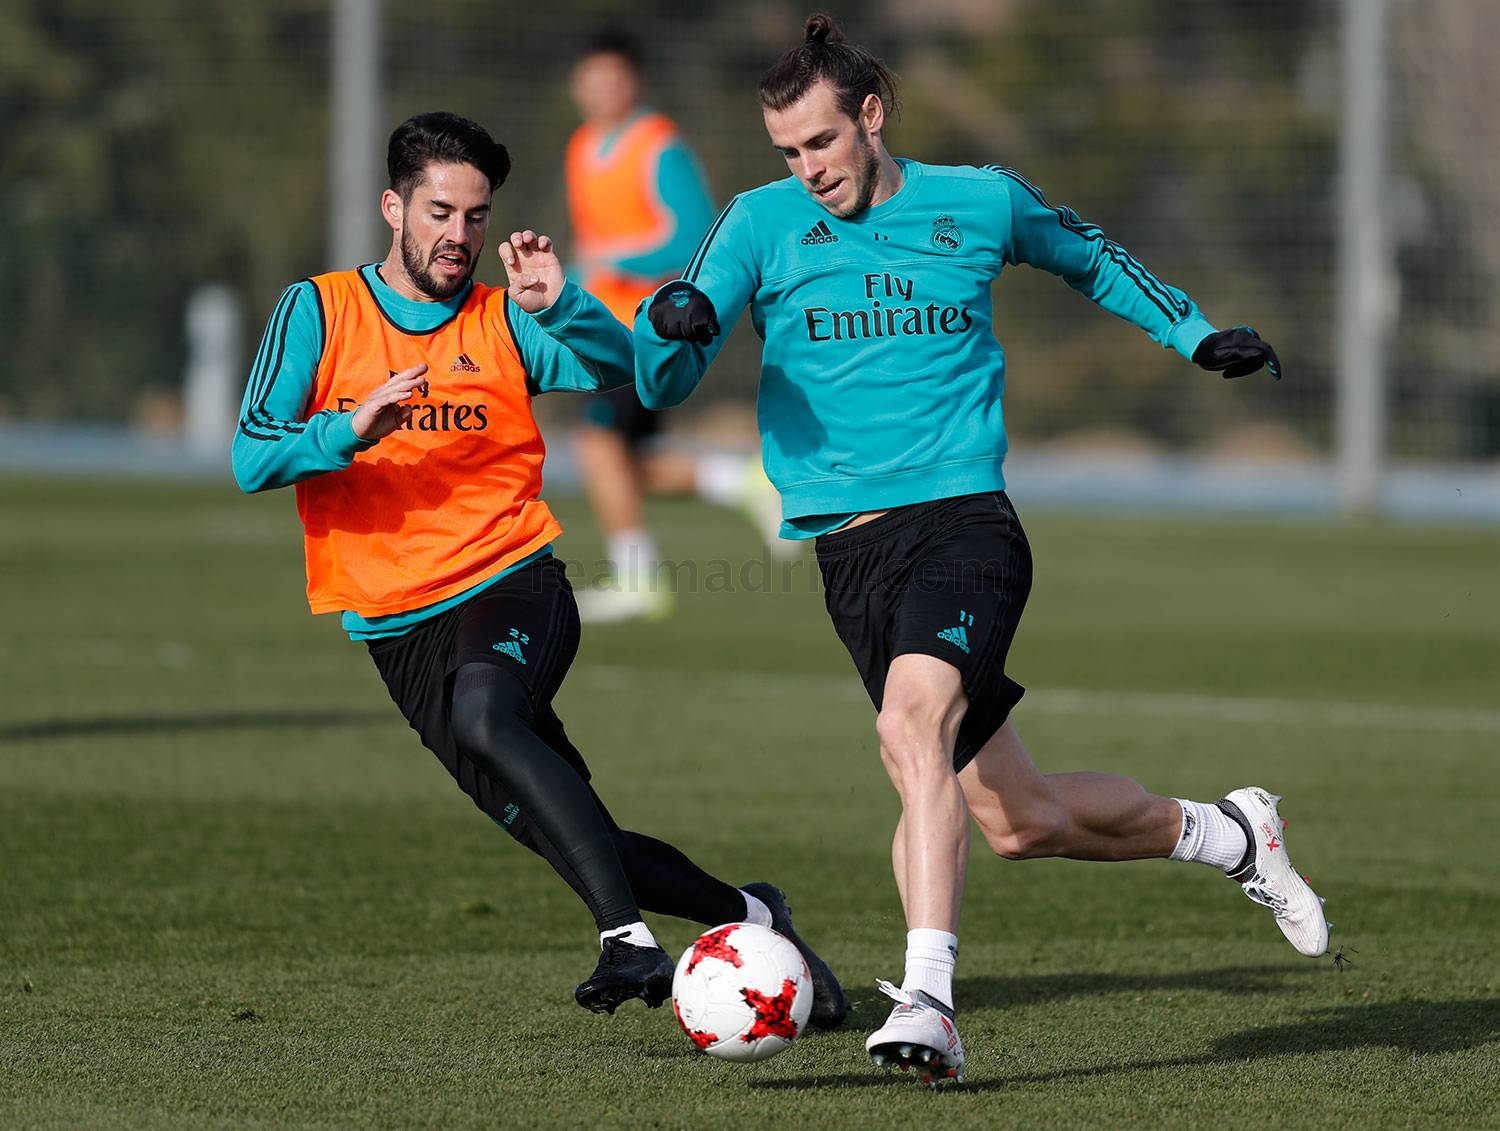 Real Madrid - Entrenamiento del Real Madrid - 23-01-2018